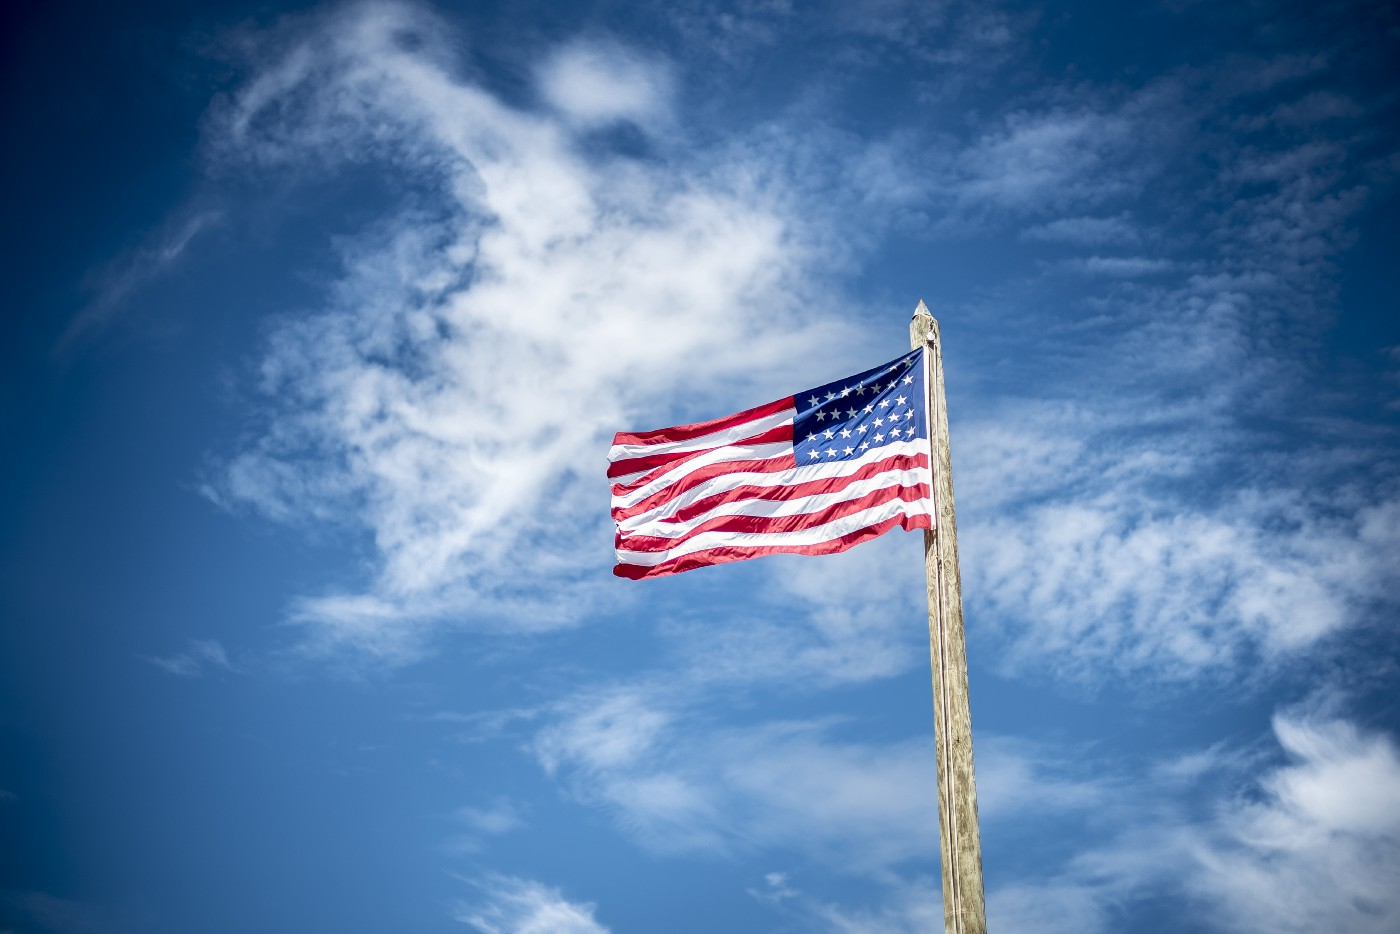 Red, White, Blue—the American flag represents Freedom and Independence